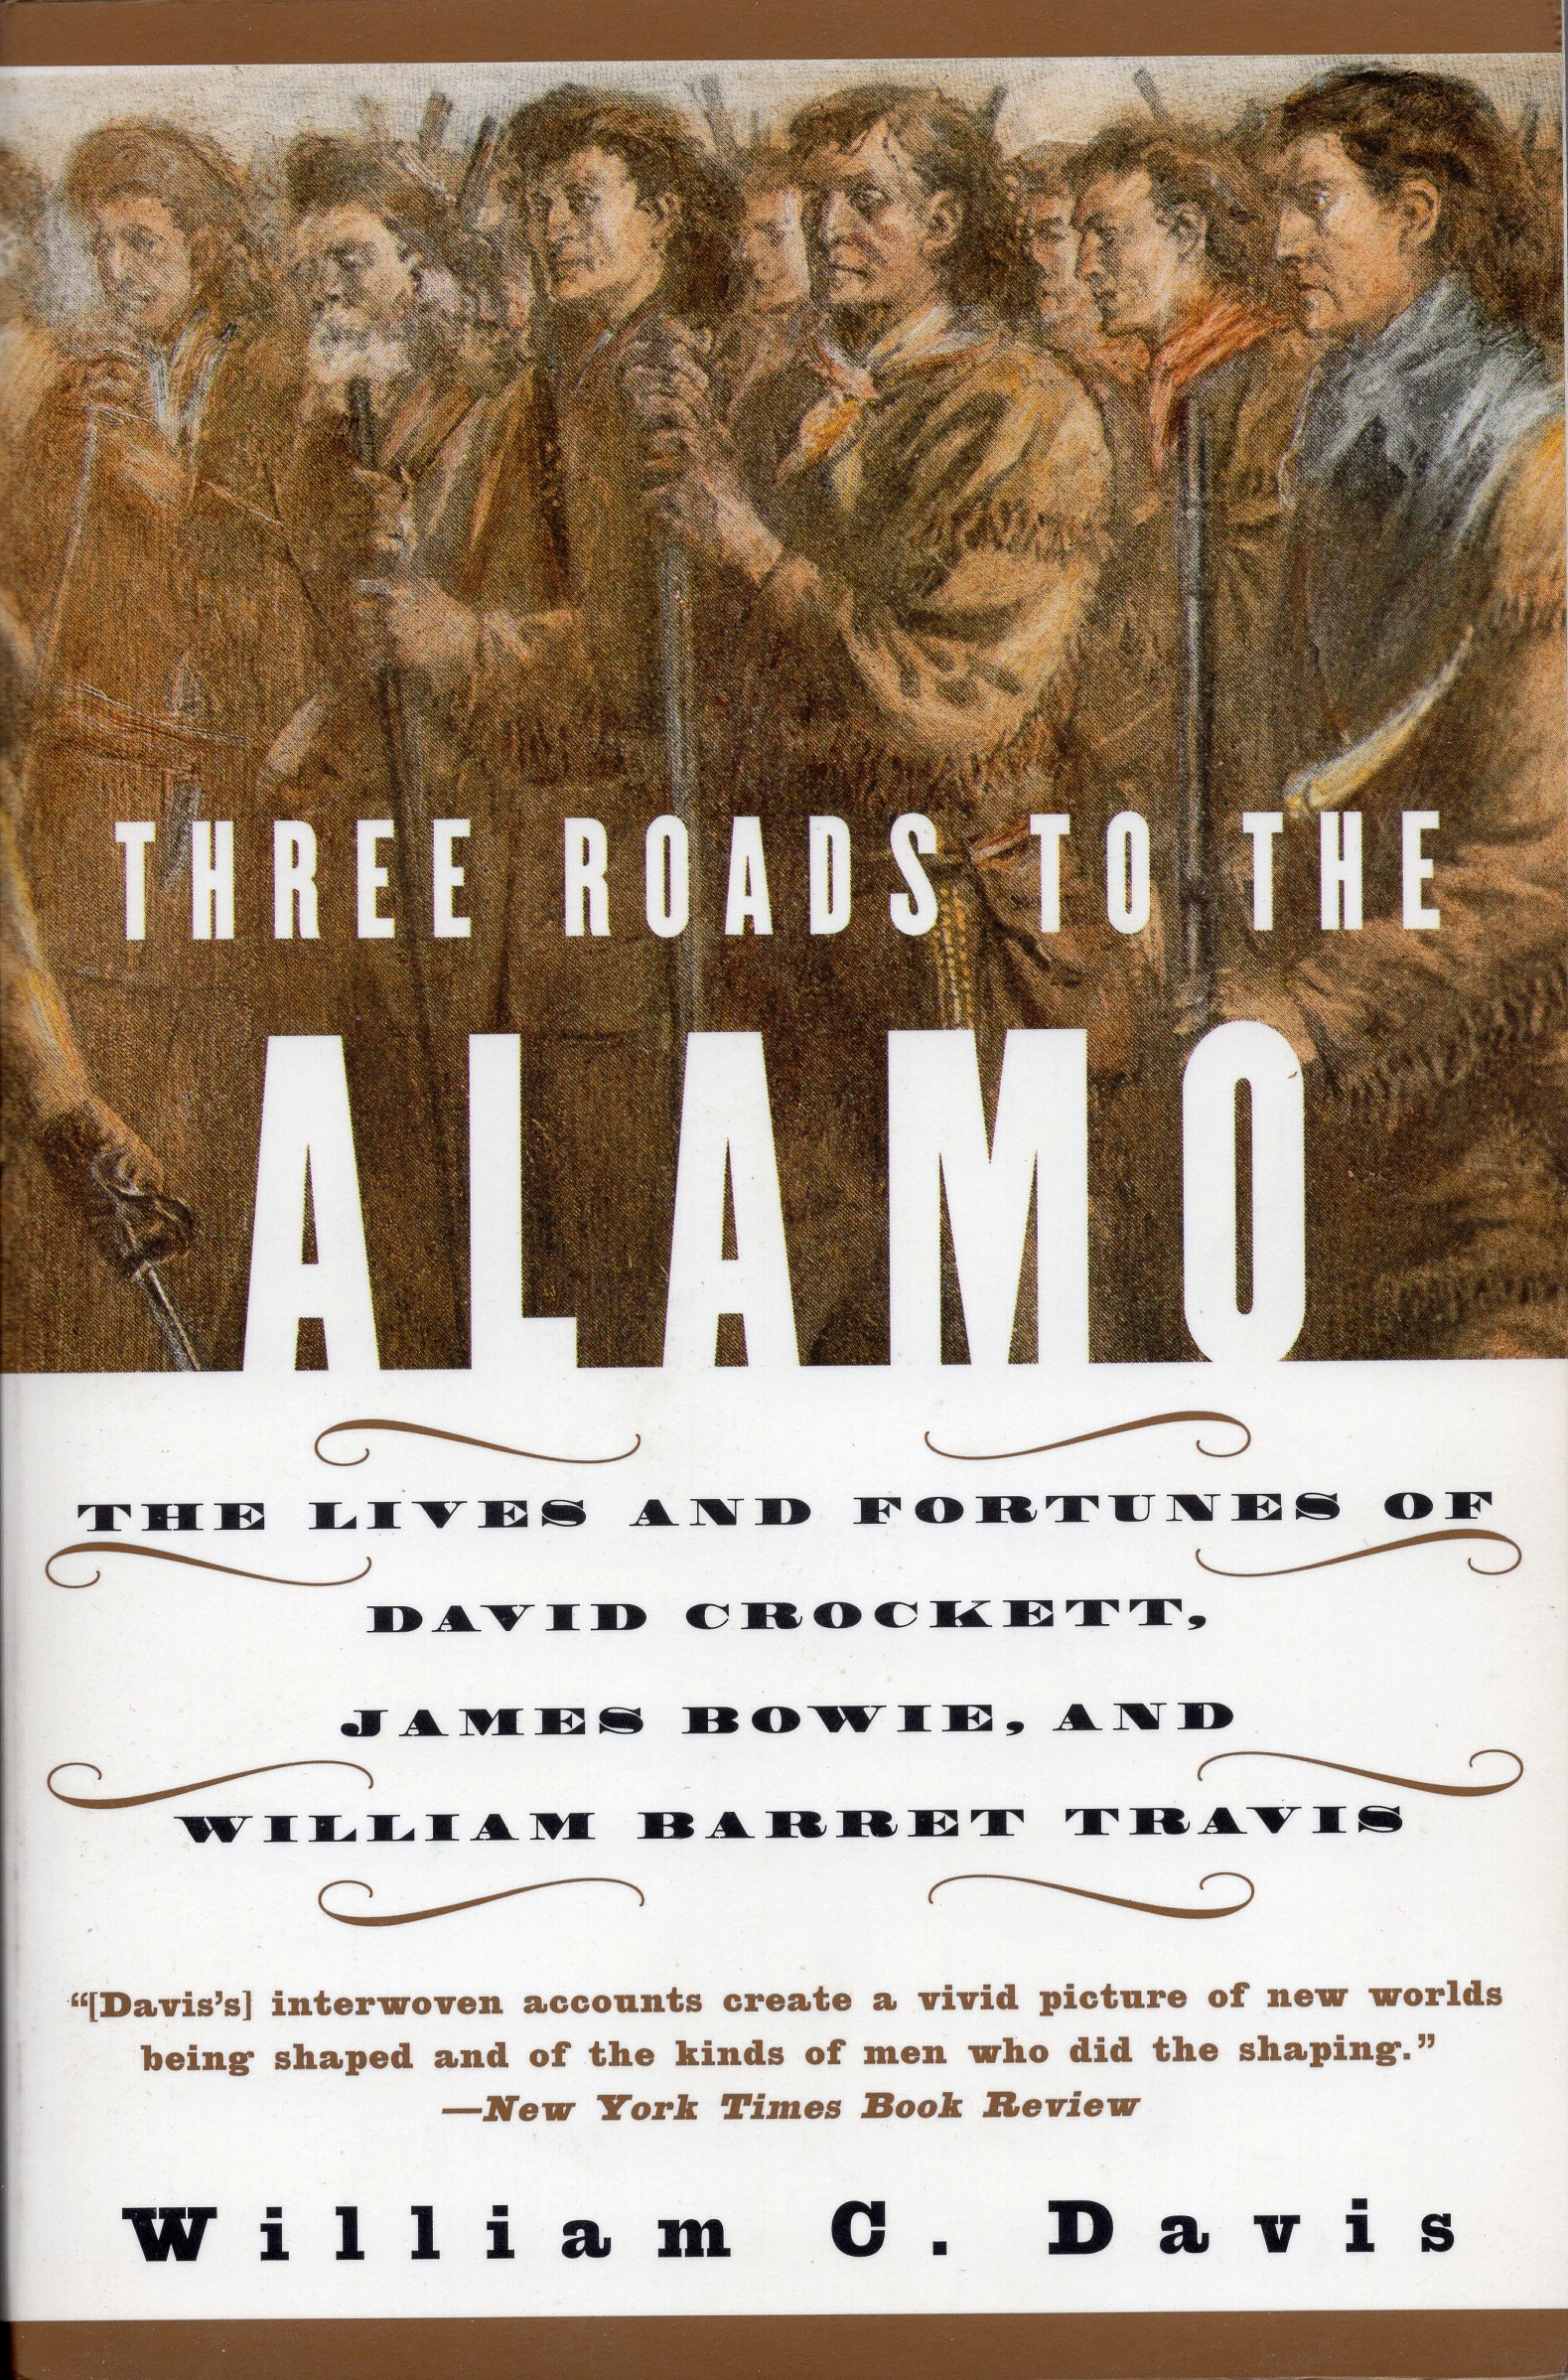 Three Roads to the Alamo: The Lives and Fortunes of David Crockett, James Bowie, and William Barret Travis by William C. Davis (1998)